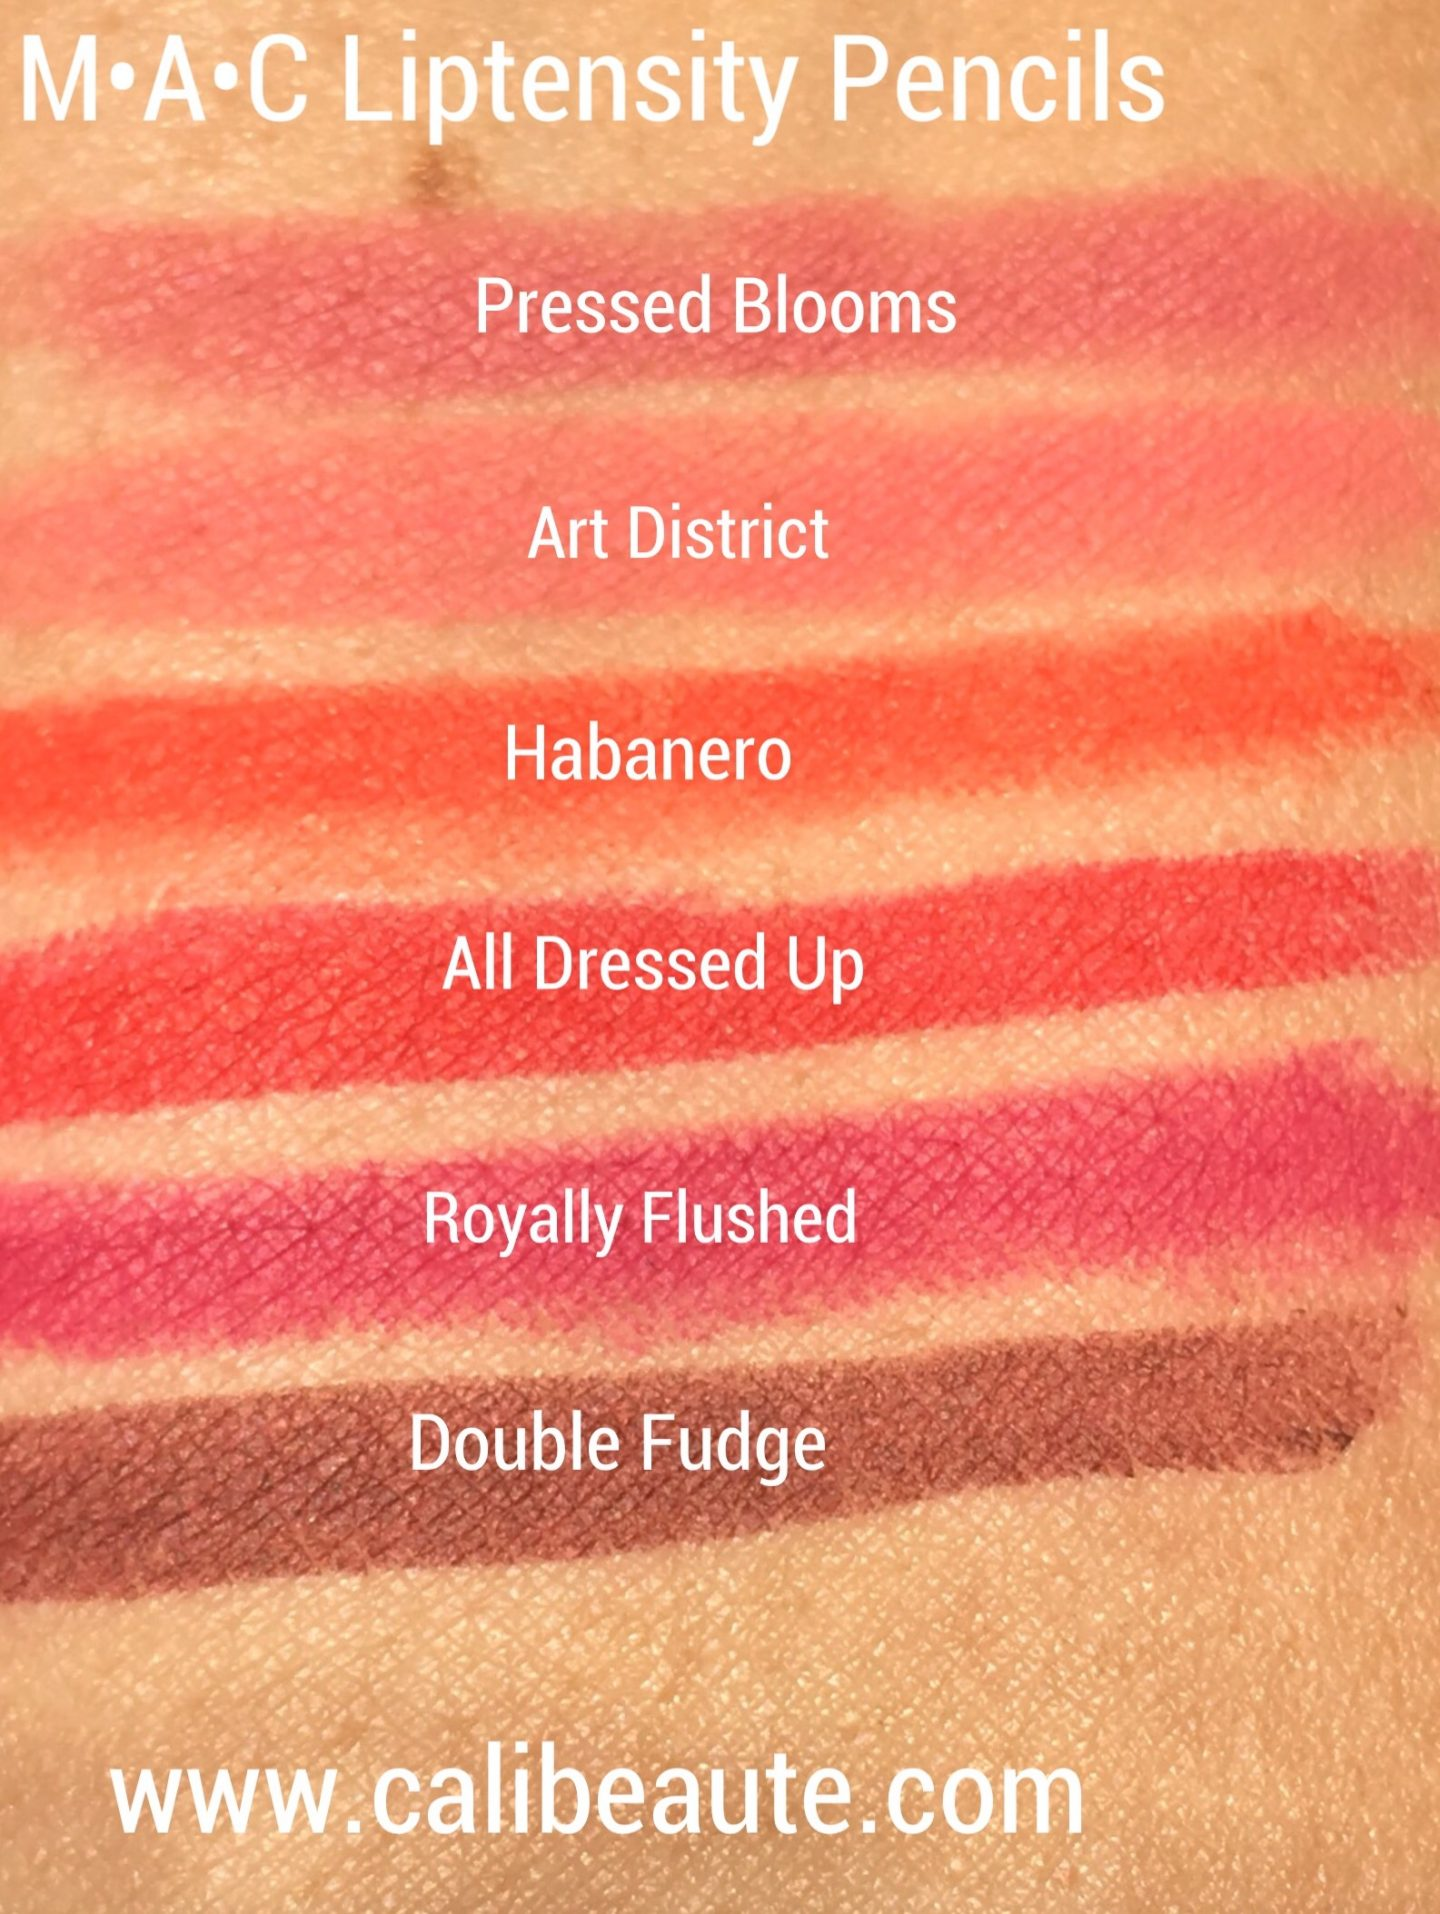 MAC Liptensity Lip Pencil Swatches |www.calibeaute.com